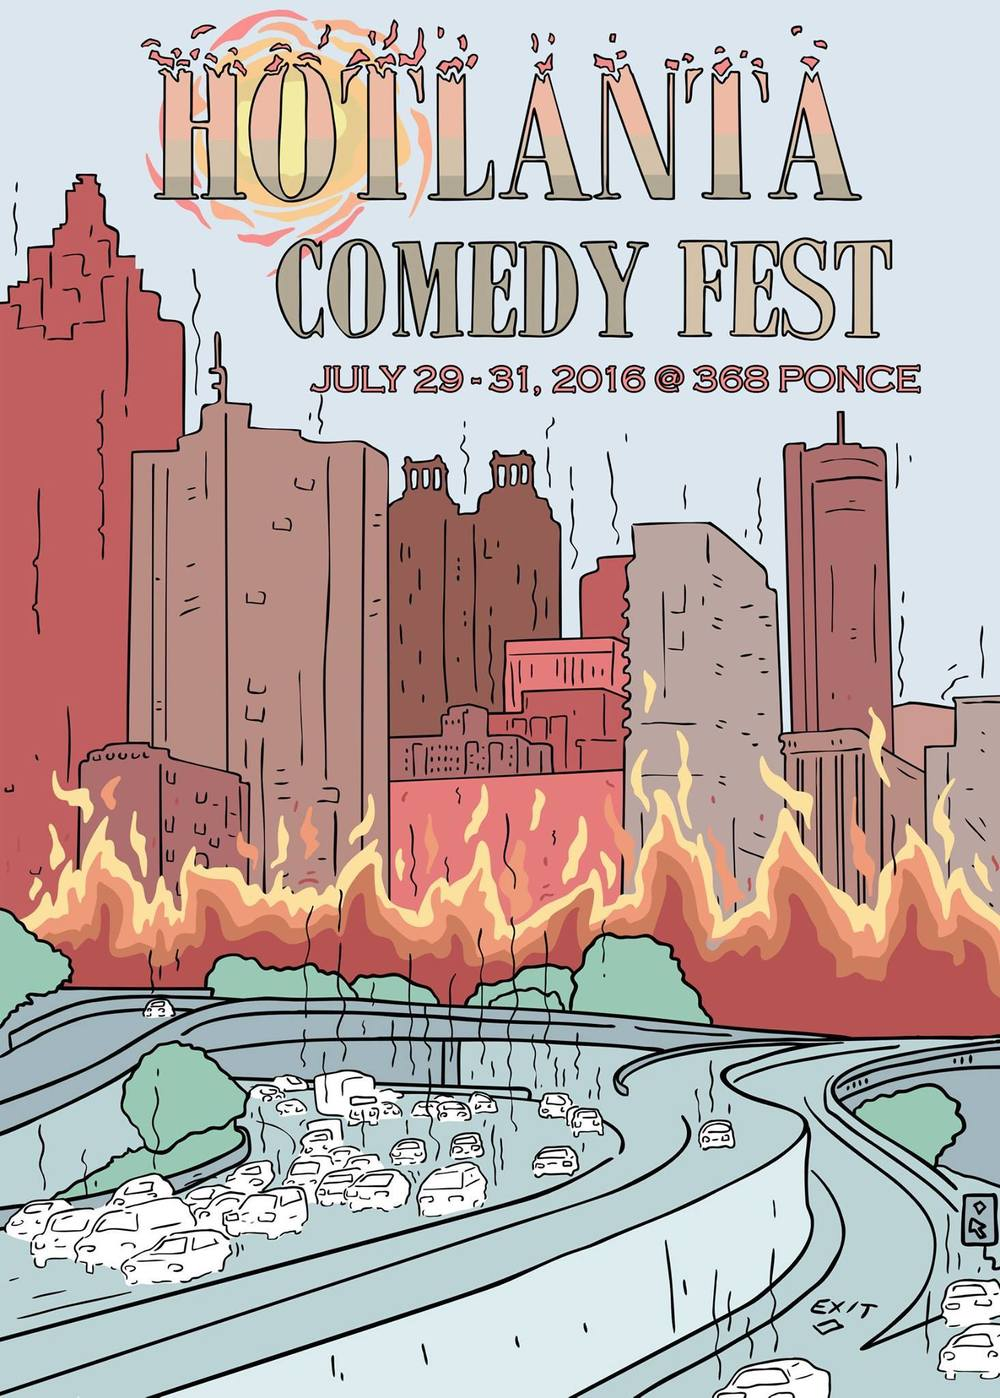 The Comedy Fest is 3 days featuring a multitude of Atlanta comics and organizations at 368 Ponce.